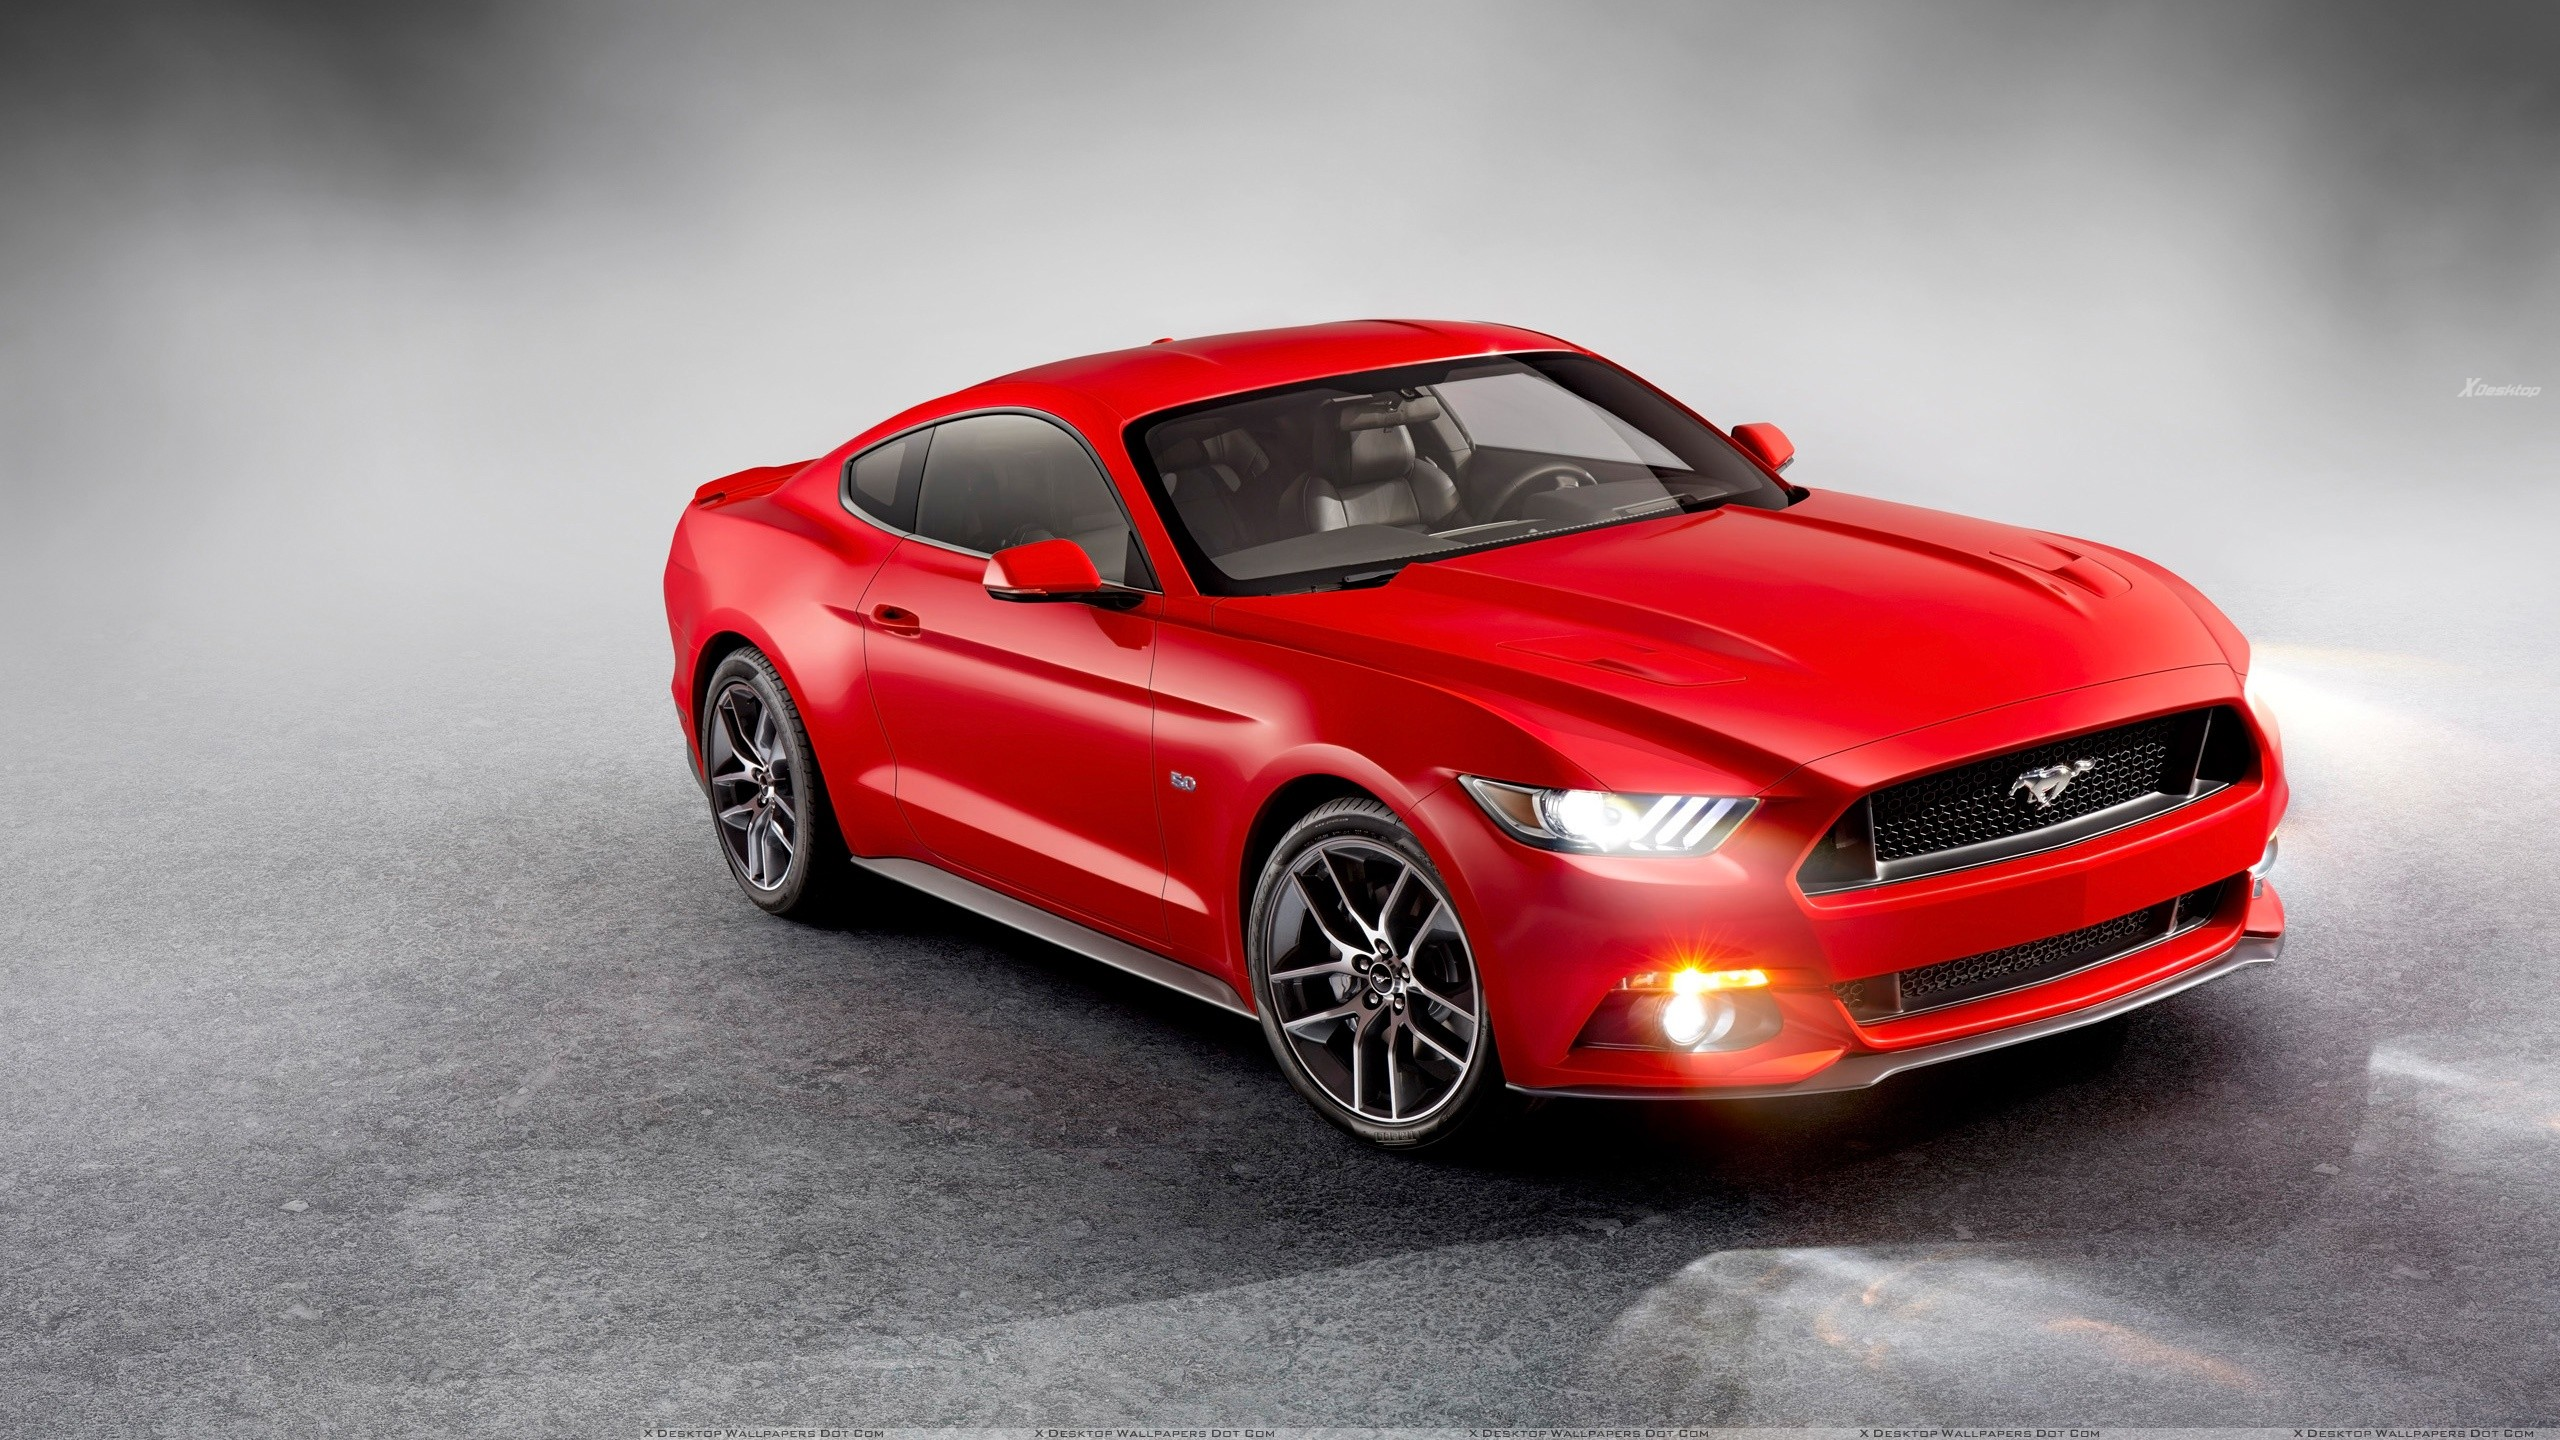 Ford Mustang Red Wallpapers Posted By Ryan Thompson